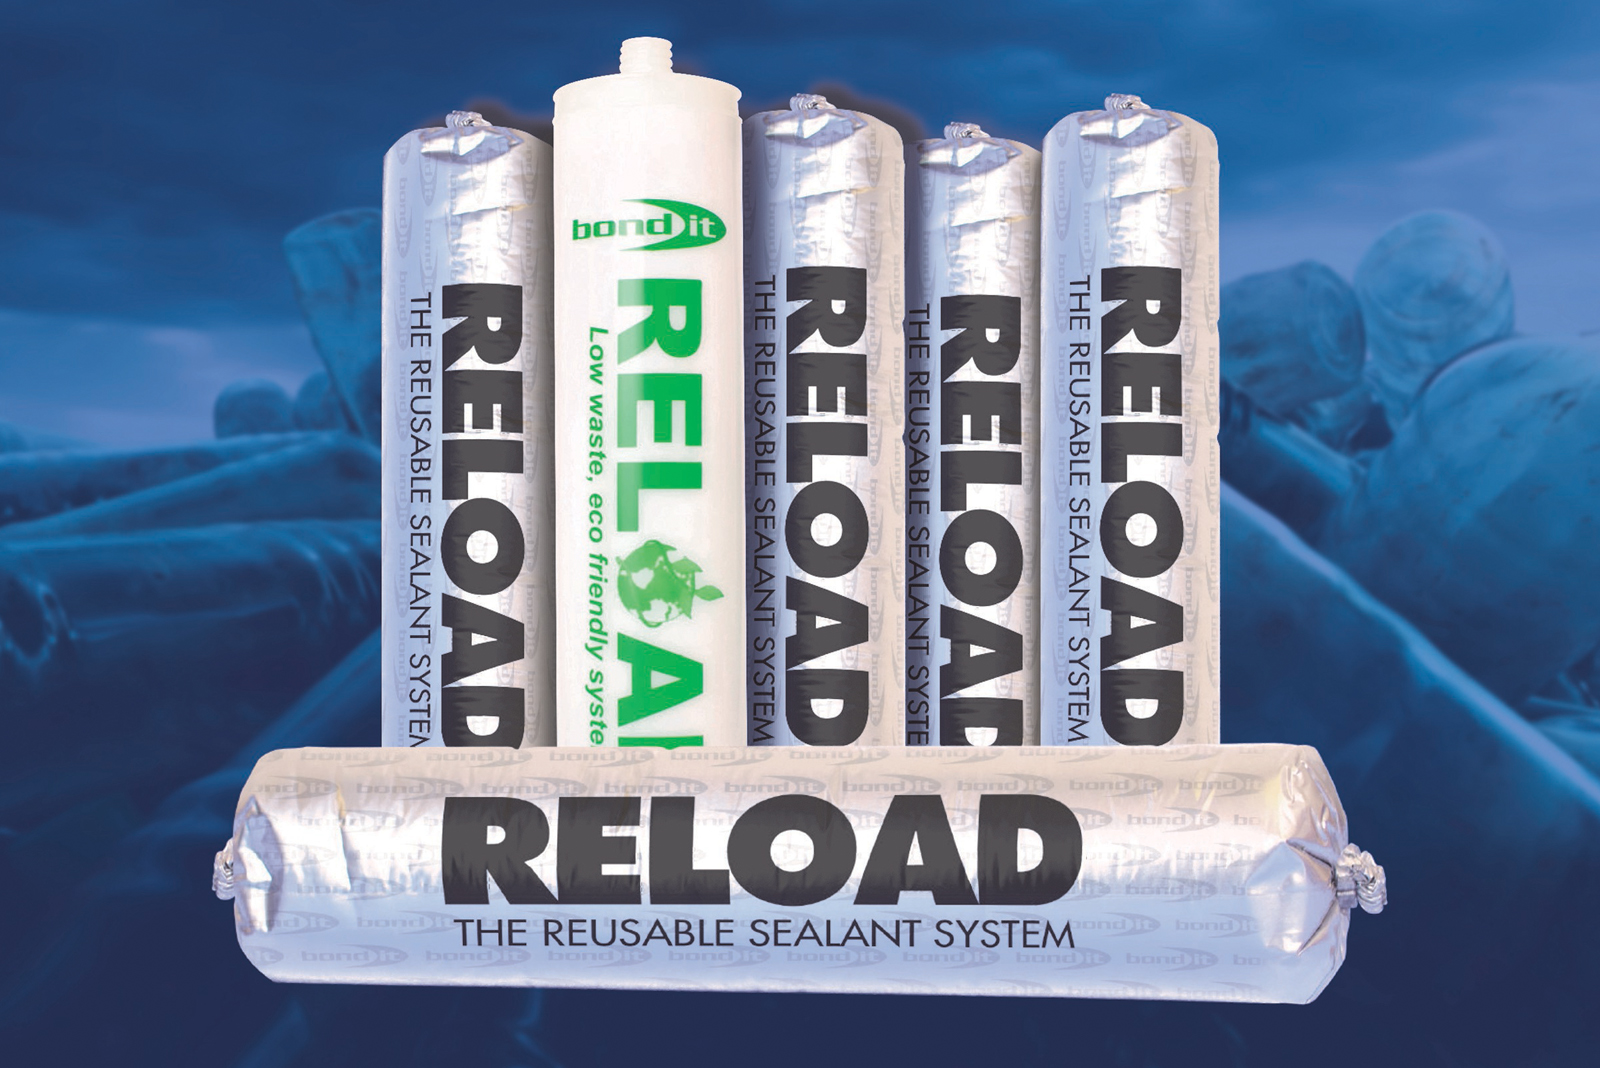 Bond It's new refillable sealant system